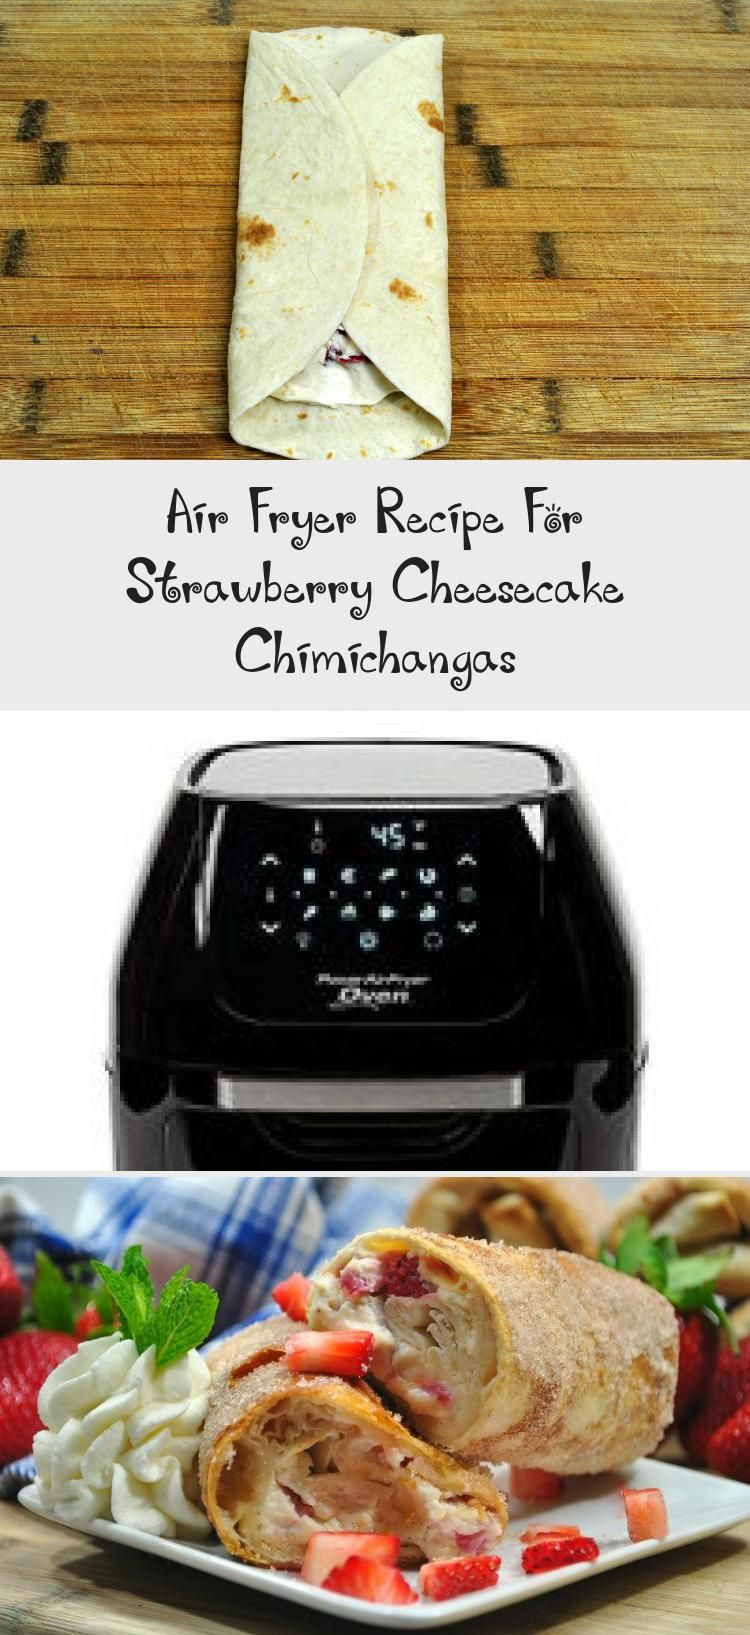 Air fryer recipe for strawberry cheesecake chimichangas in